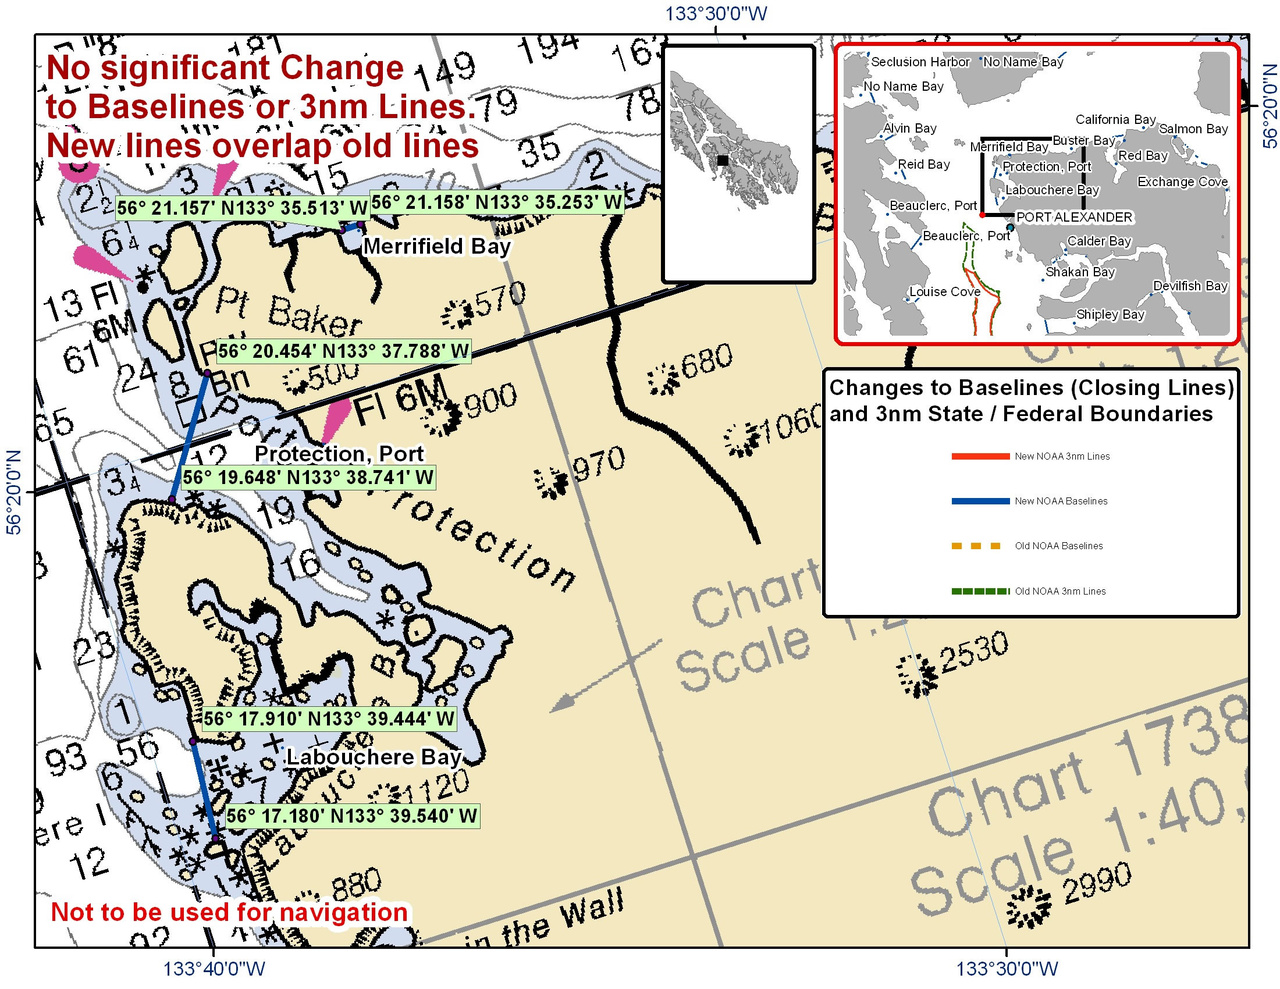 Chart for Port Protection and Merrifield Bay